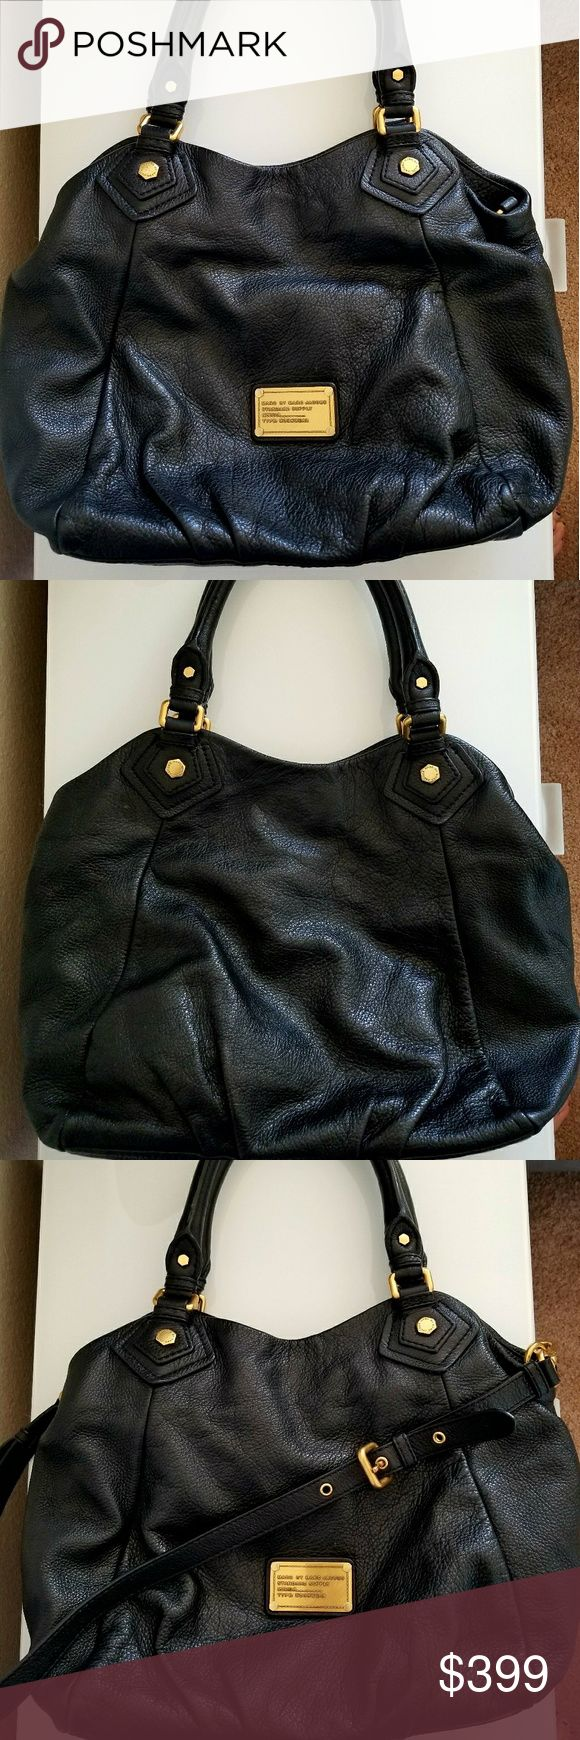 Marc by Marc Jacobs handbag Marc by Marc Jacobs handbag in a beautiful black leather. This handbag is great for everyday use. I bought it on shopbop a few years back, and loved to wear it. It comes in great used condition with any scratches. It comes with an additional leather strap to wear it as a shoulderbag. Marc By Marc Jacobs Bags Shoulder Bags